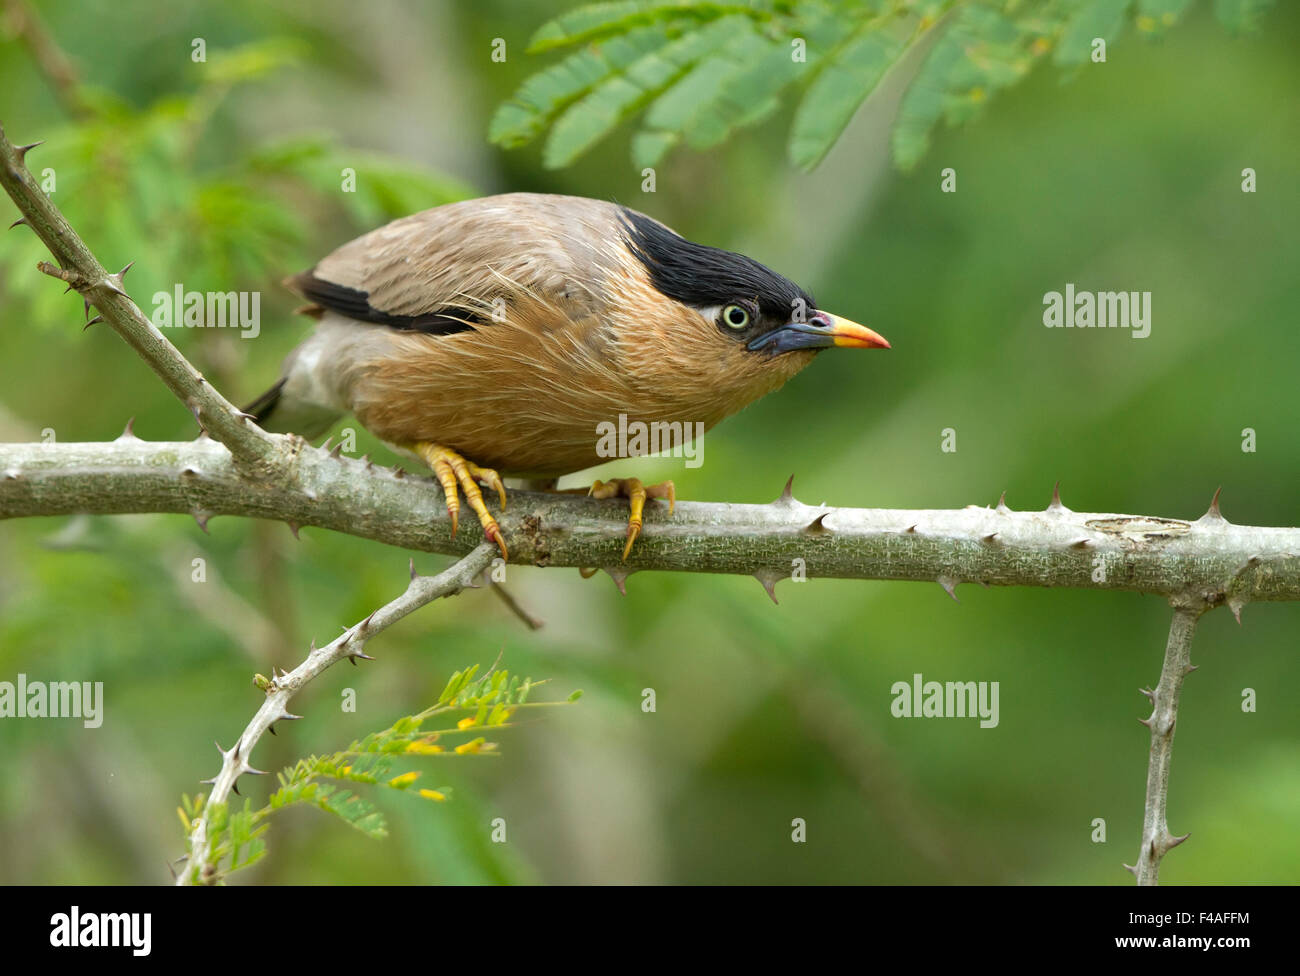 The brahminy myna or brahminy starling (Sturnia pagodarum) is a member of the starling family of birds. Stock Photo